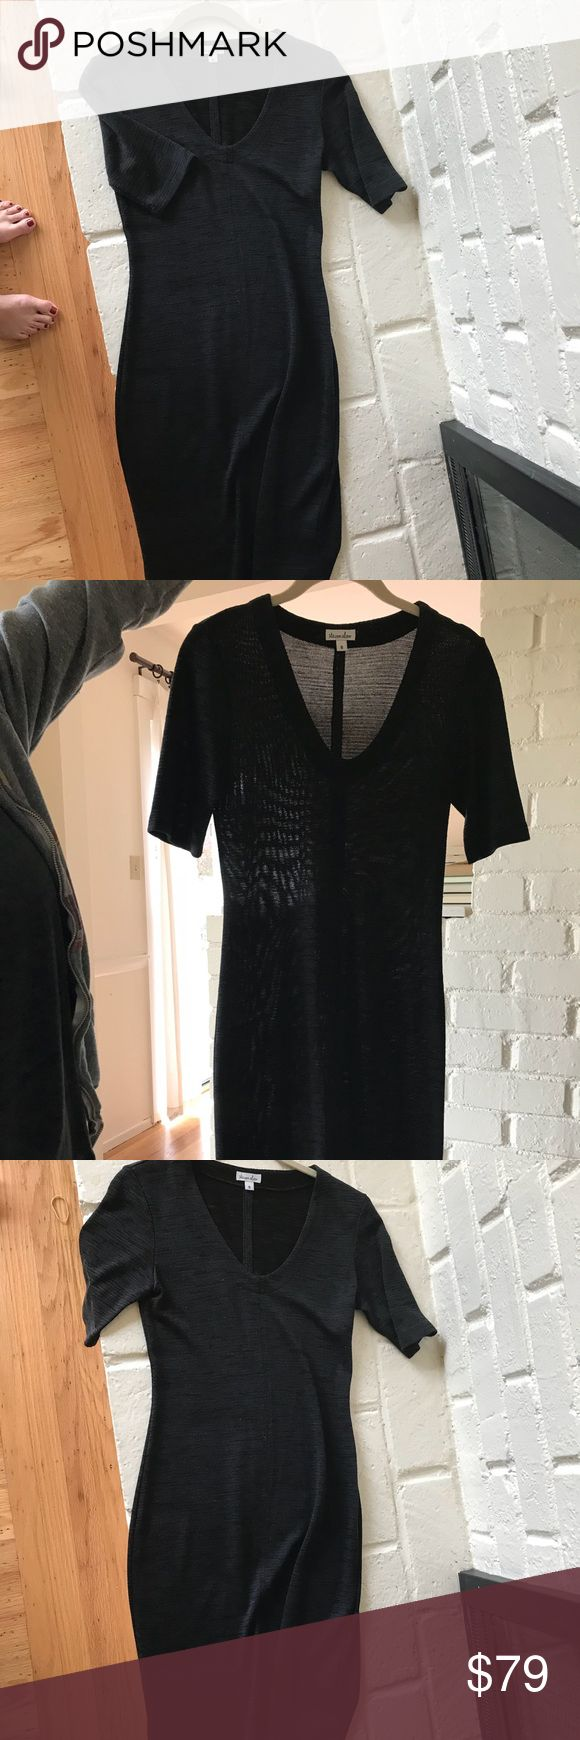 Steven Alan dress size small Fitted Steven Alan dress hits below knee.  Perfect with boots.  V-neck.  Sleeves hit right above elbow.  Color is black with very thin dark teal stripes.  Material is cotton blend. Steven Alan Dresses Midi